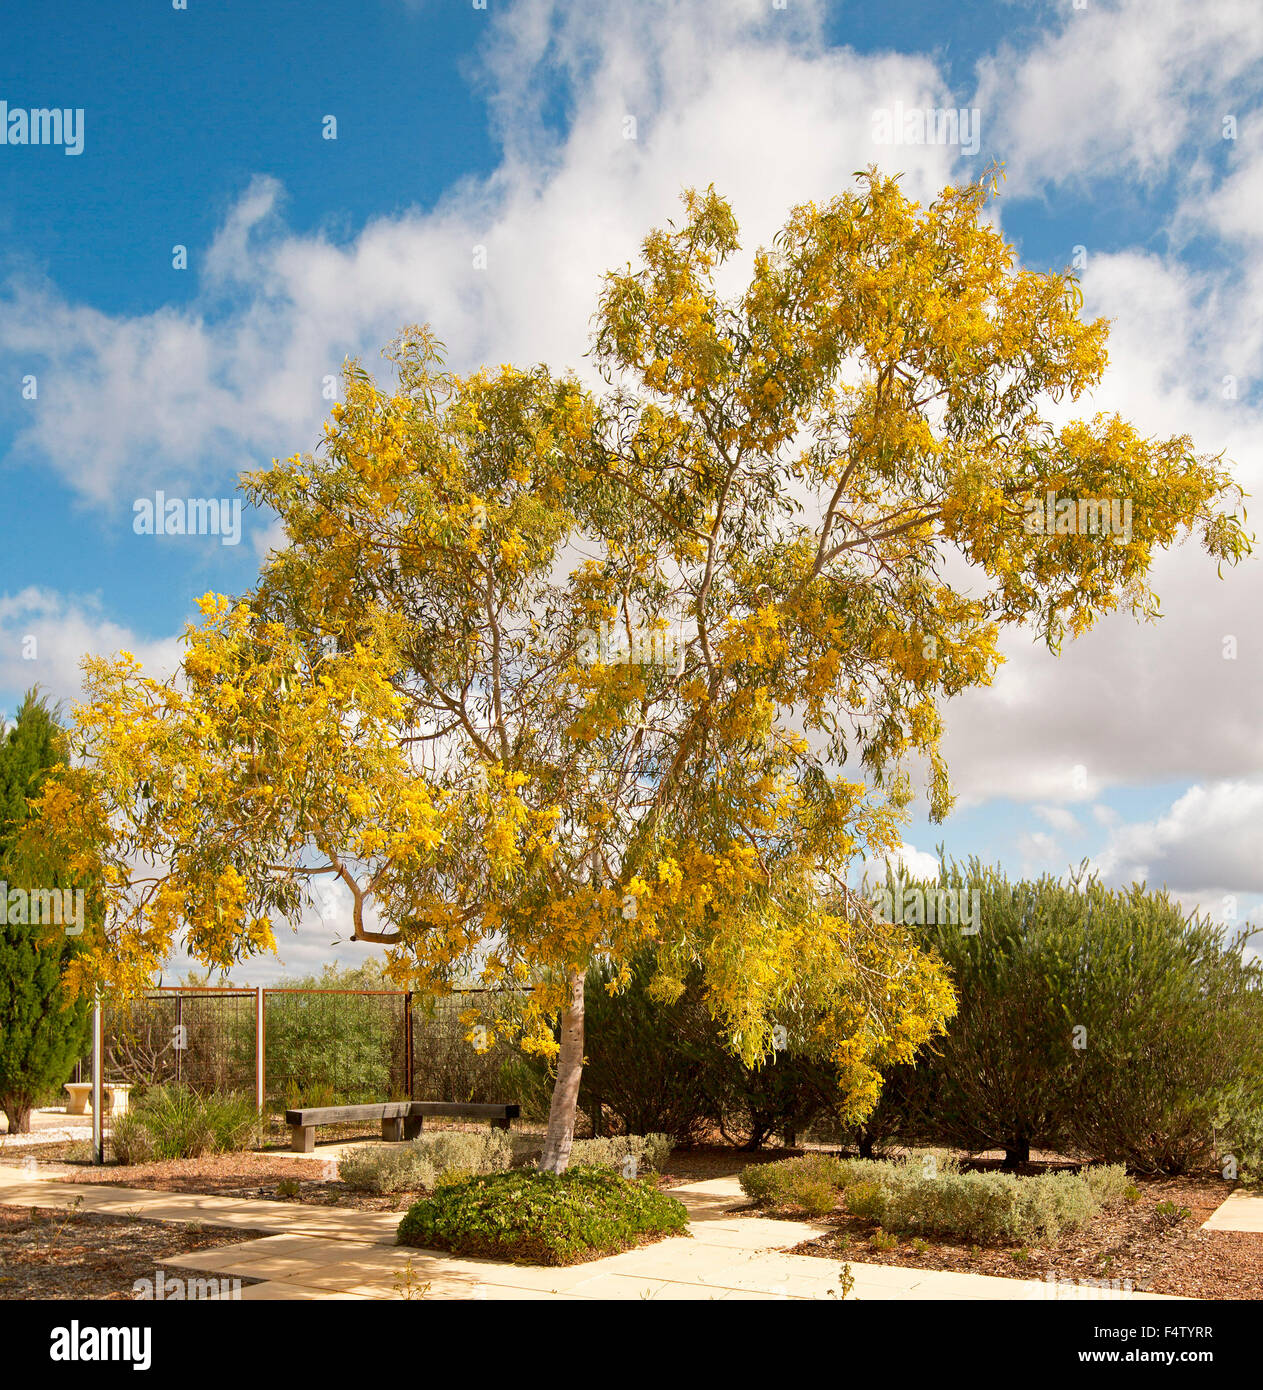 Acacia Pycnantha Golden Wattle Tree With Mass Of Yellow Flowers